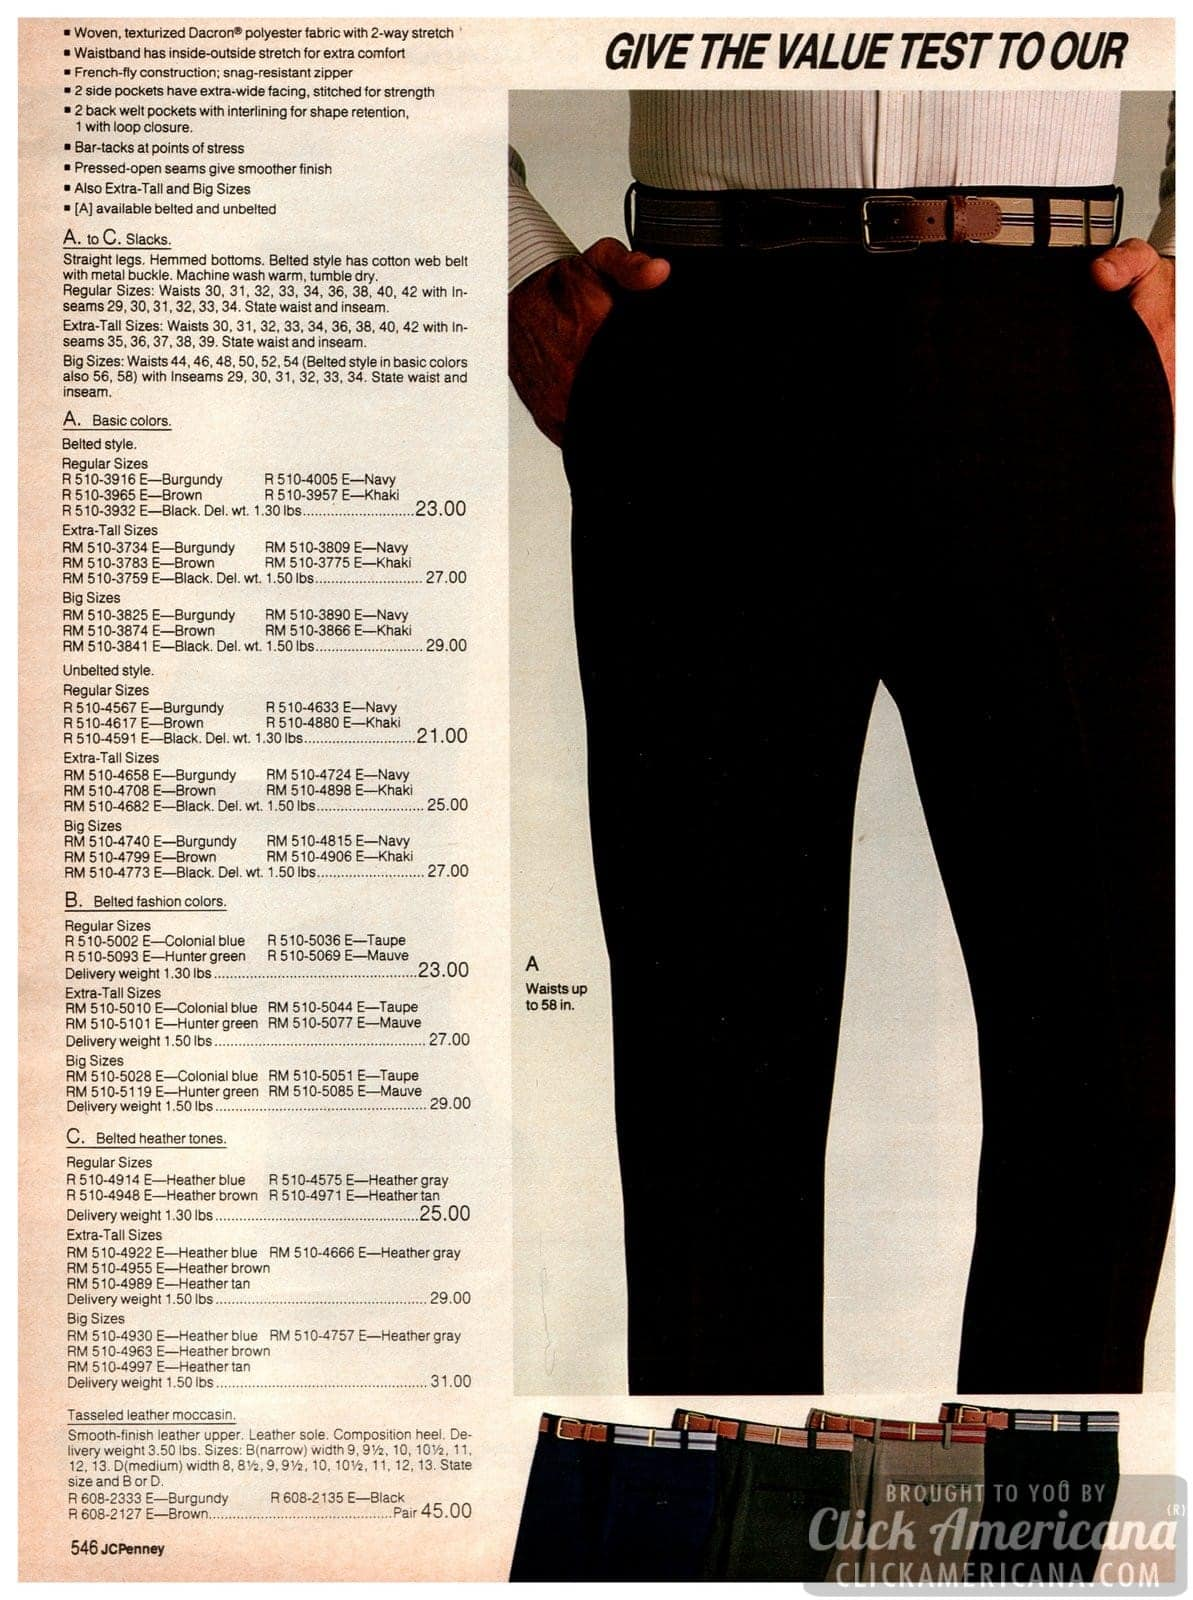 Basic slacks for men, with straight legs and made of polyester